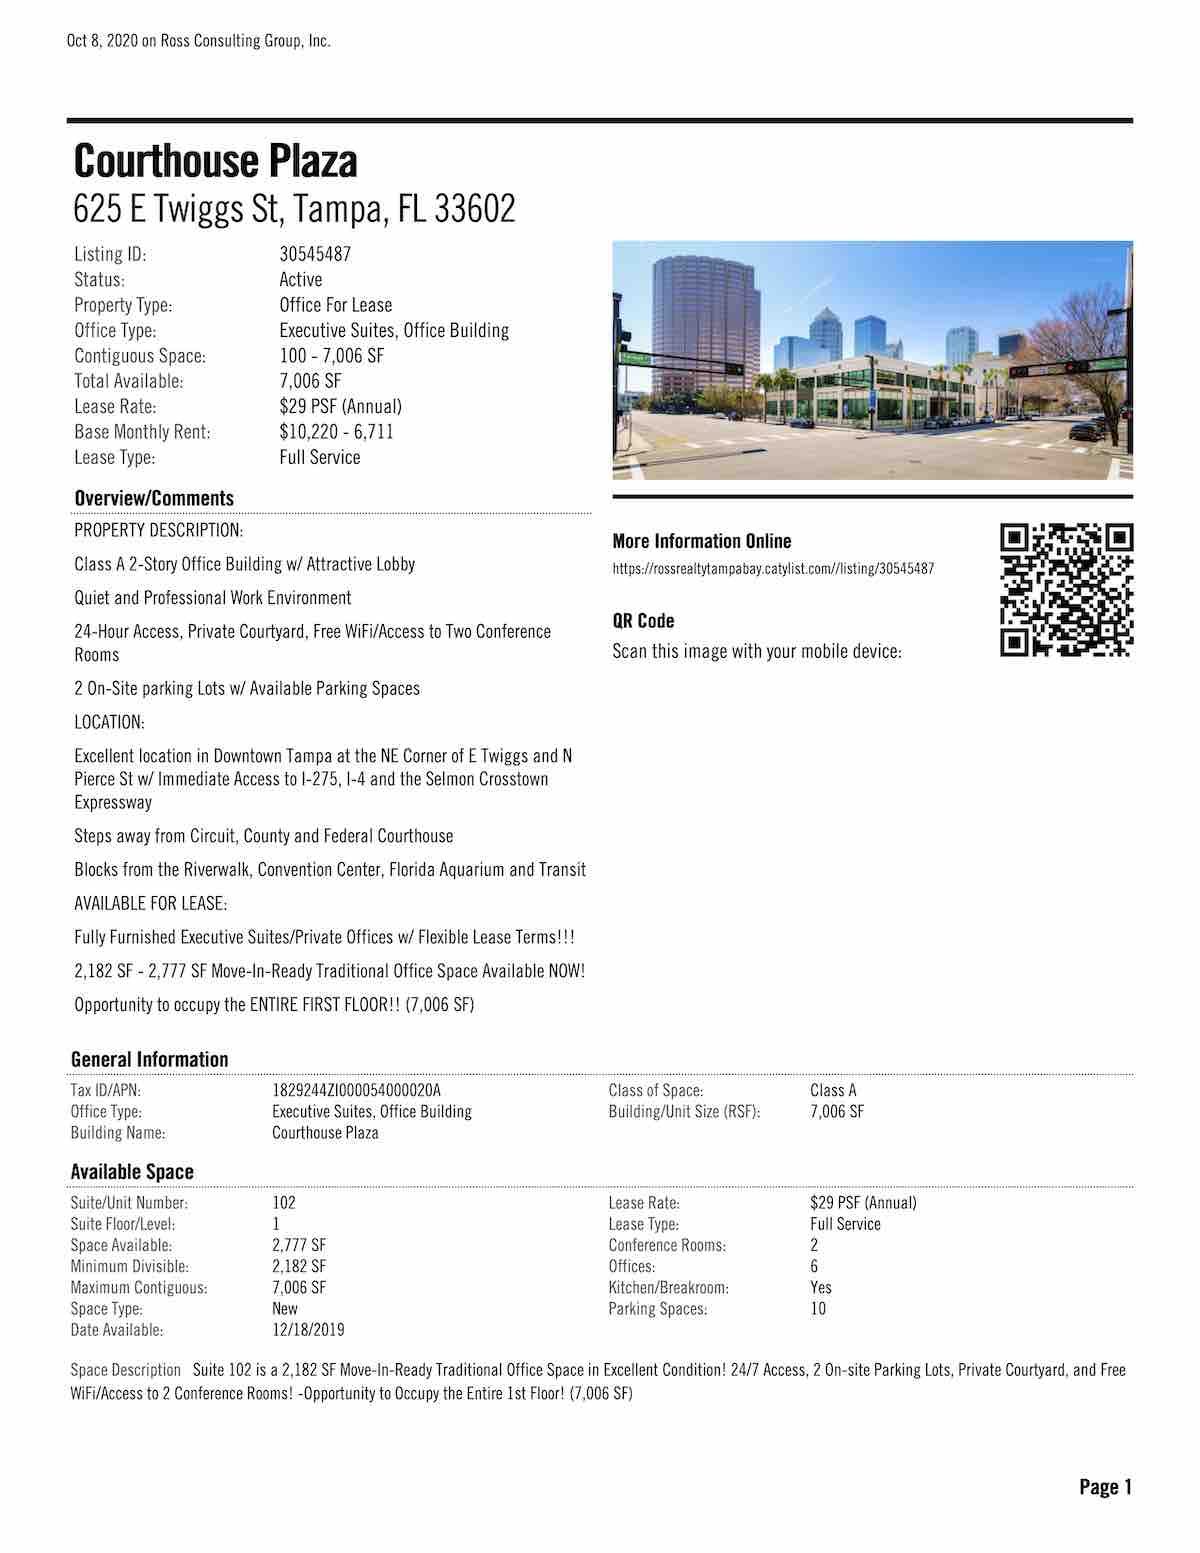 Tampa Commercial Real Estate - FOR LEASE - Courthouse Plaza - 625 E Twiggs St, Tampa, FL 33602 P1